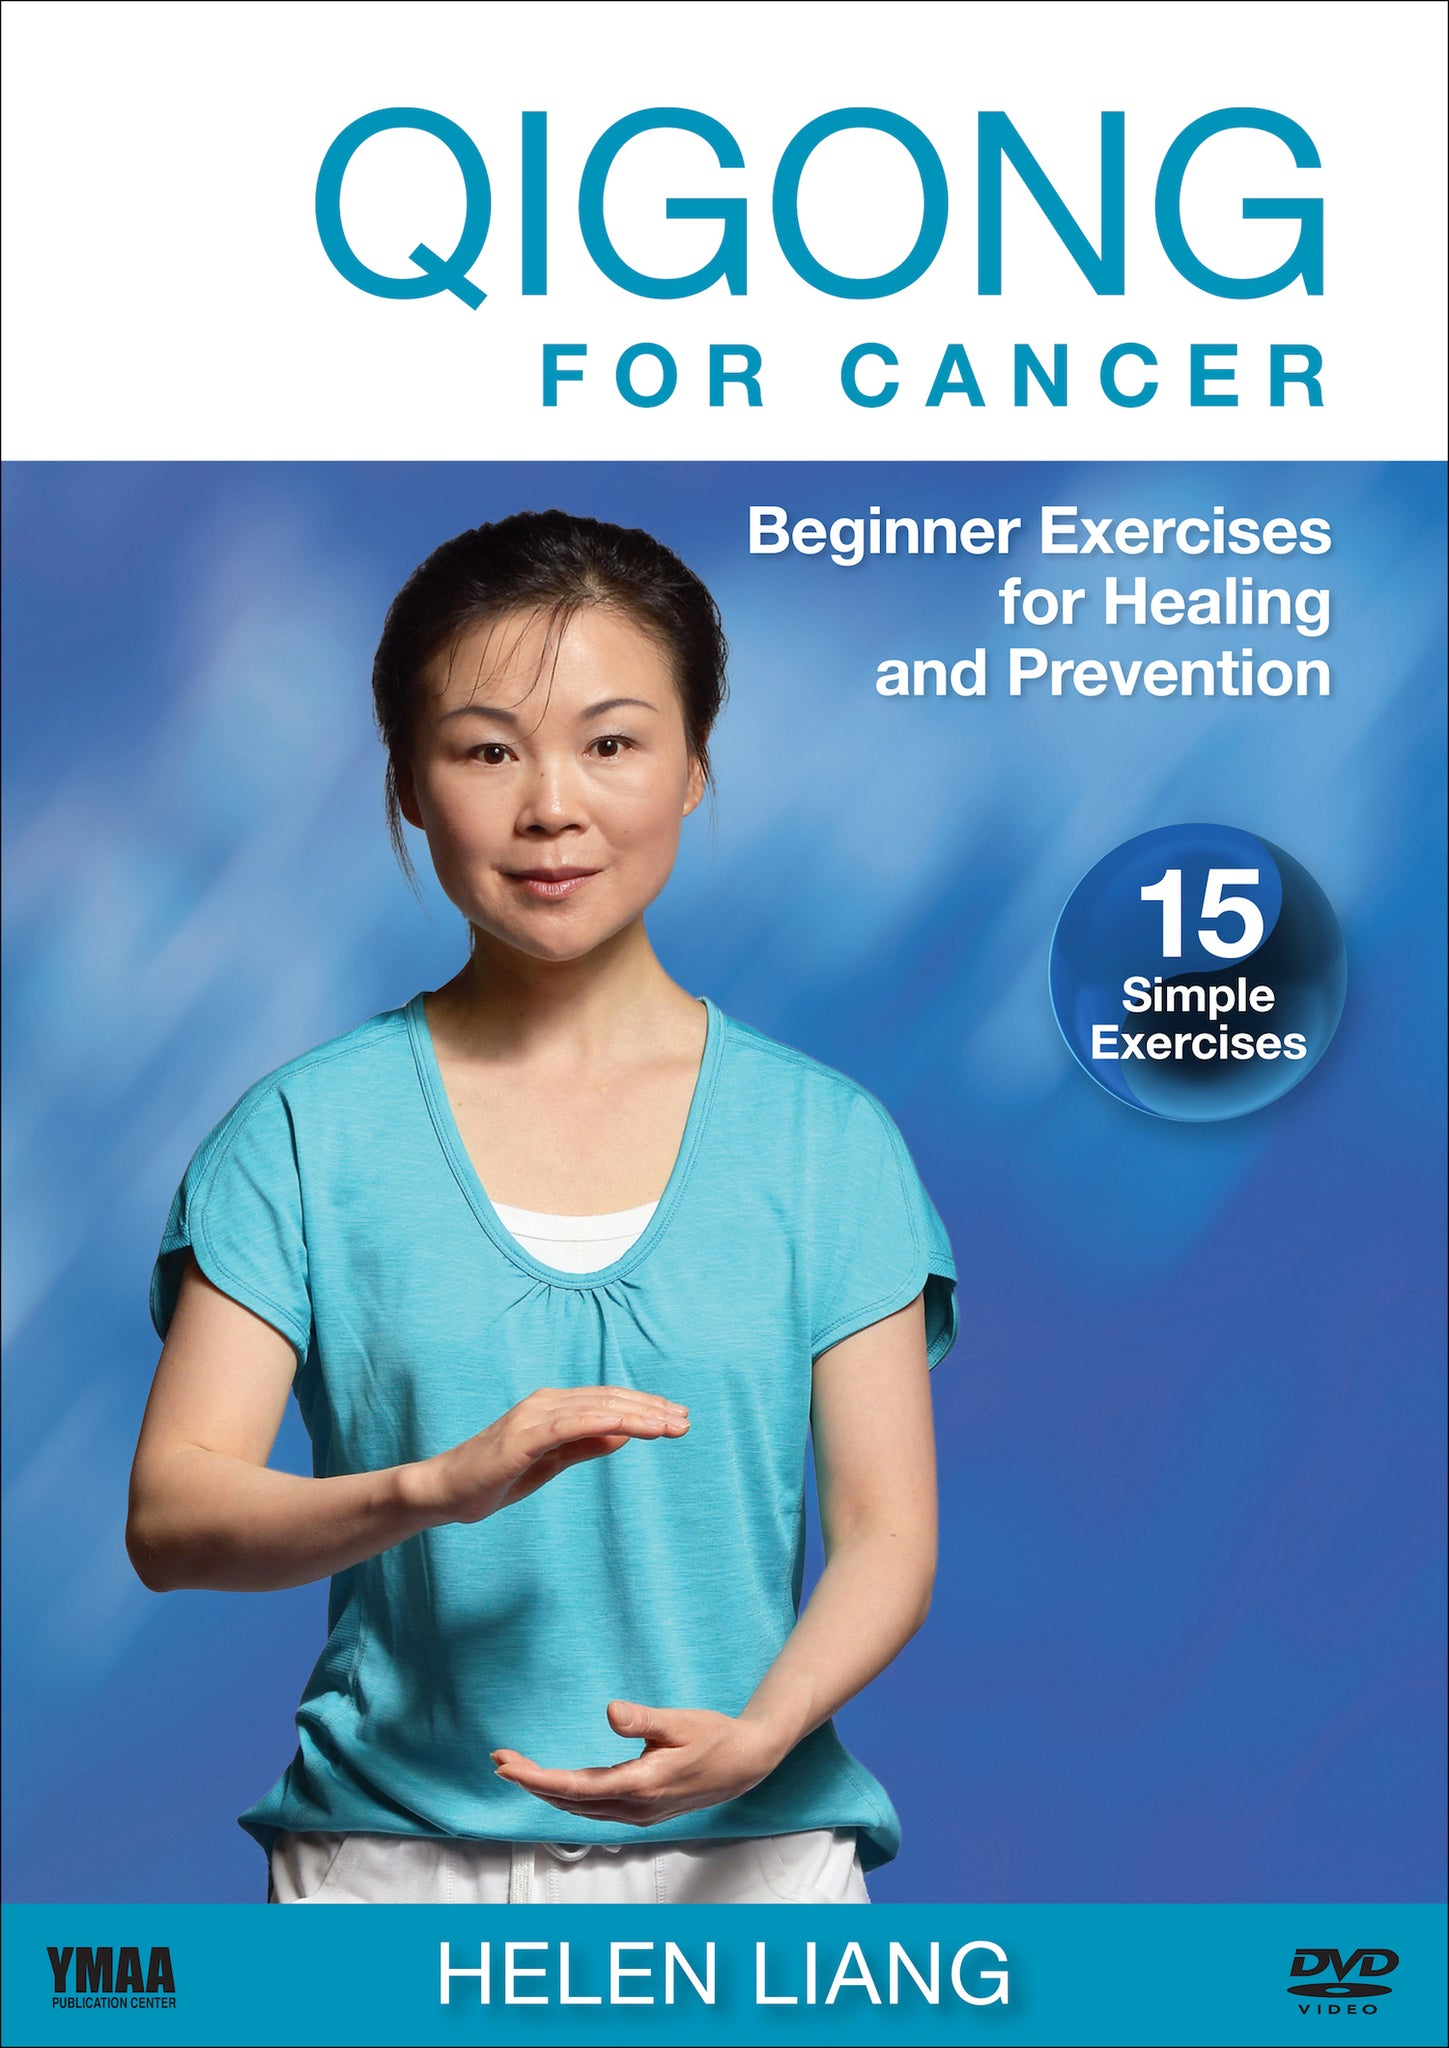 Qigong for Cancer DVD By Helen Liang - Budovideos